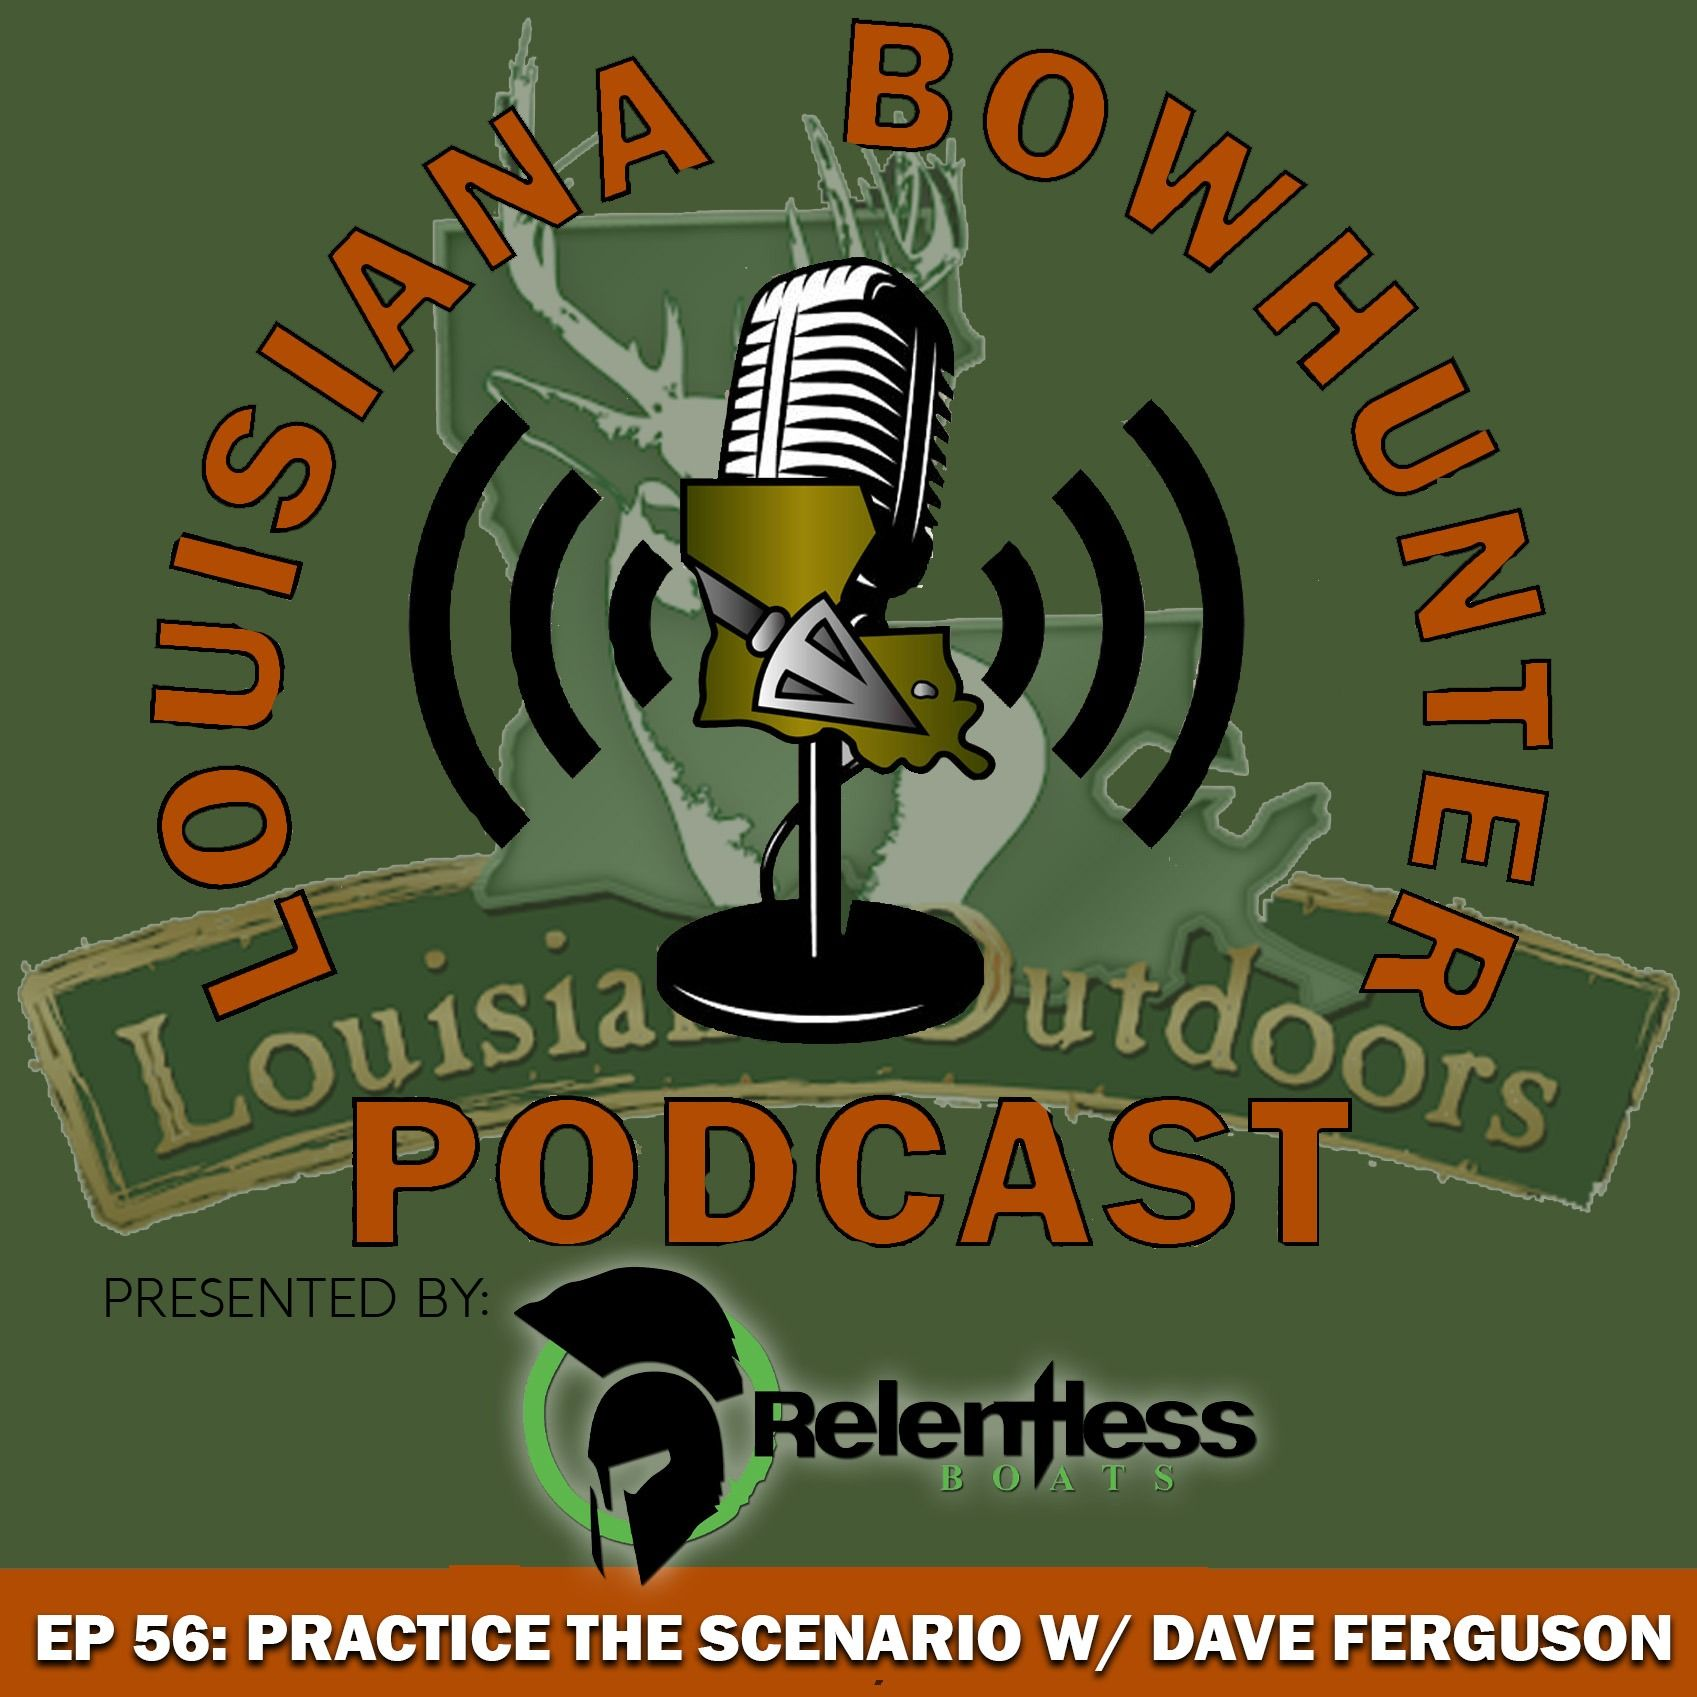 Episode 56: Practice the Scenario w/ Dave Ferguson